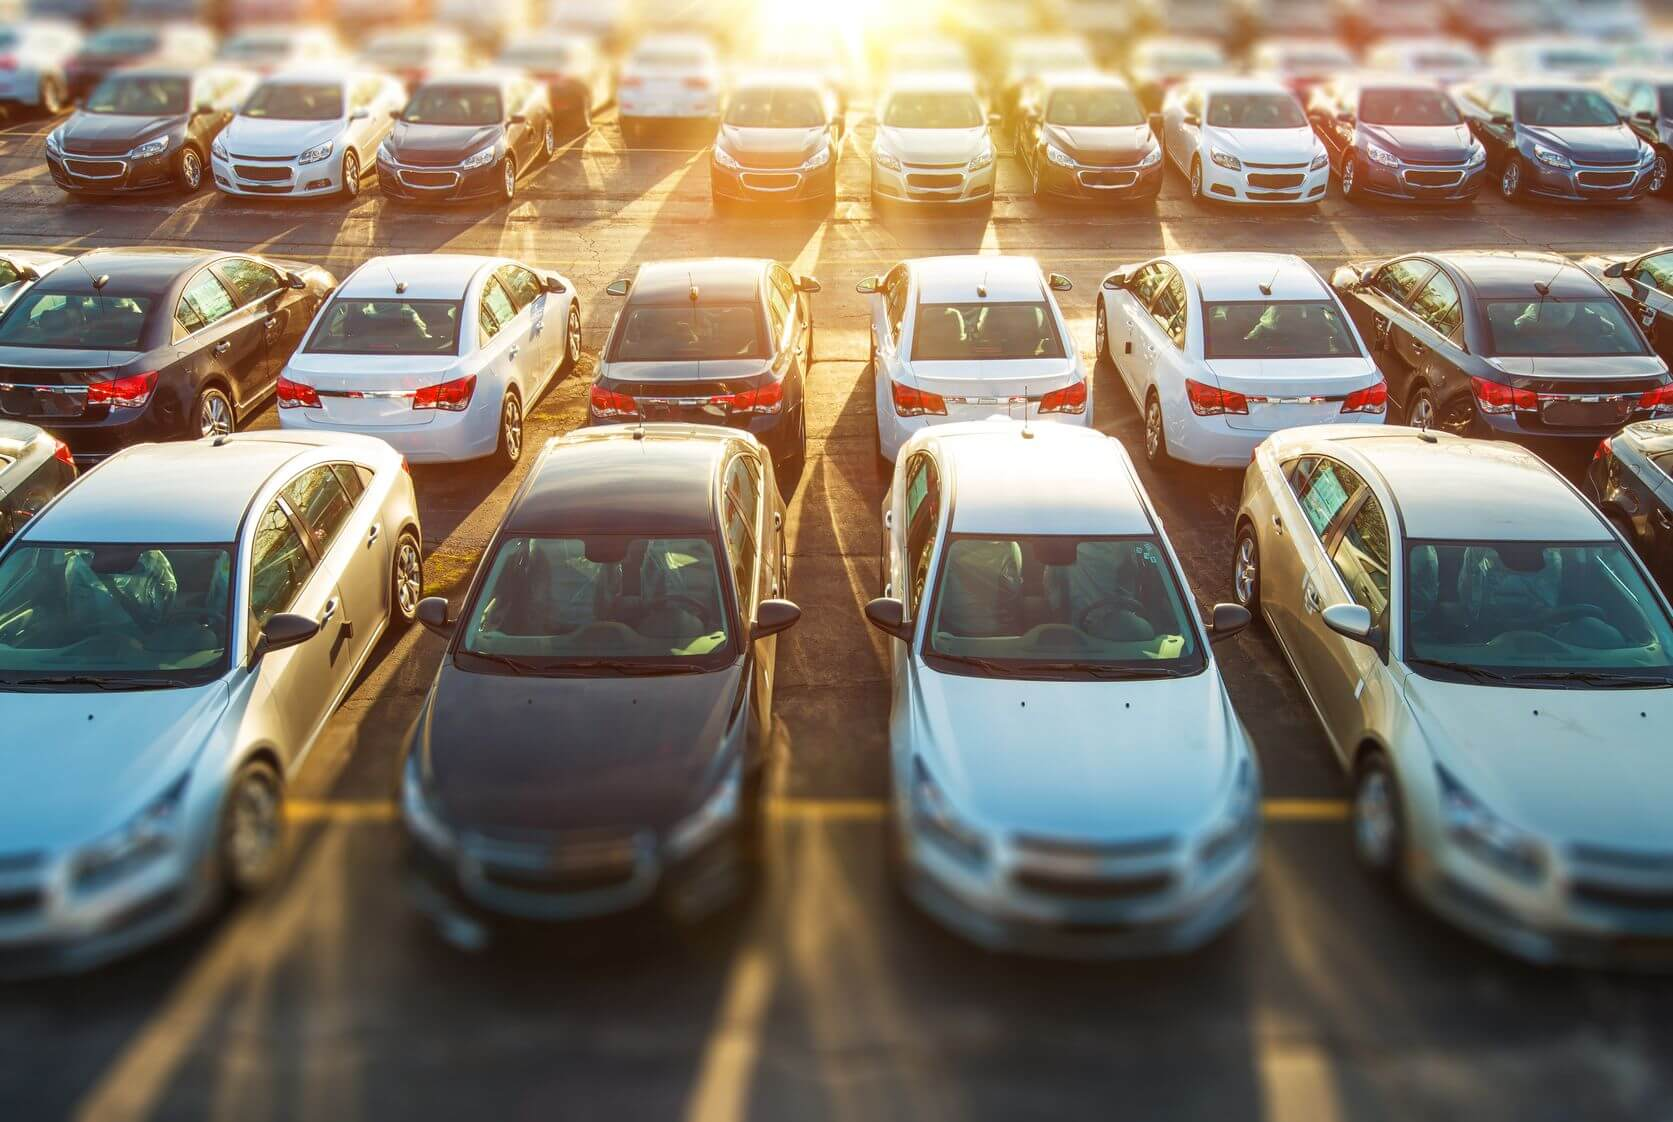 4 Parking Tips For The Hartsfield-Jackson Airport